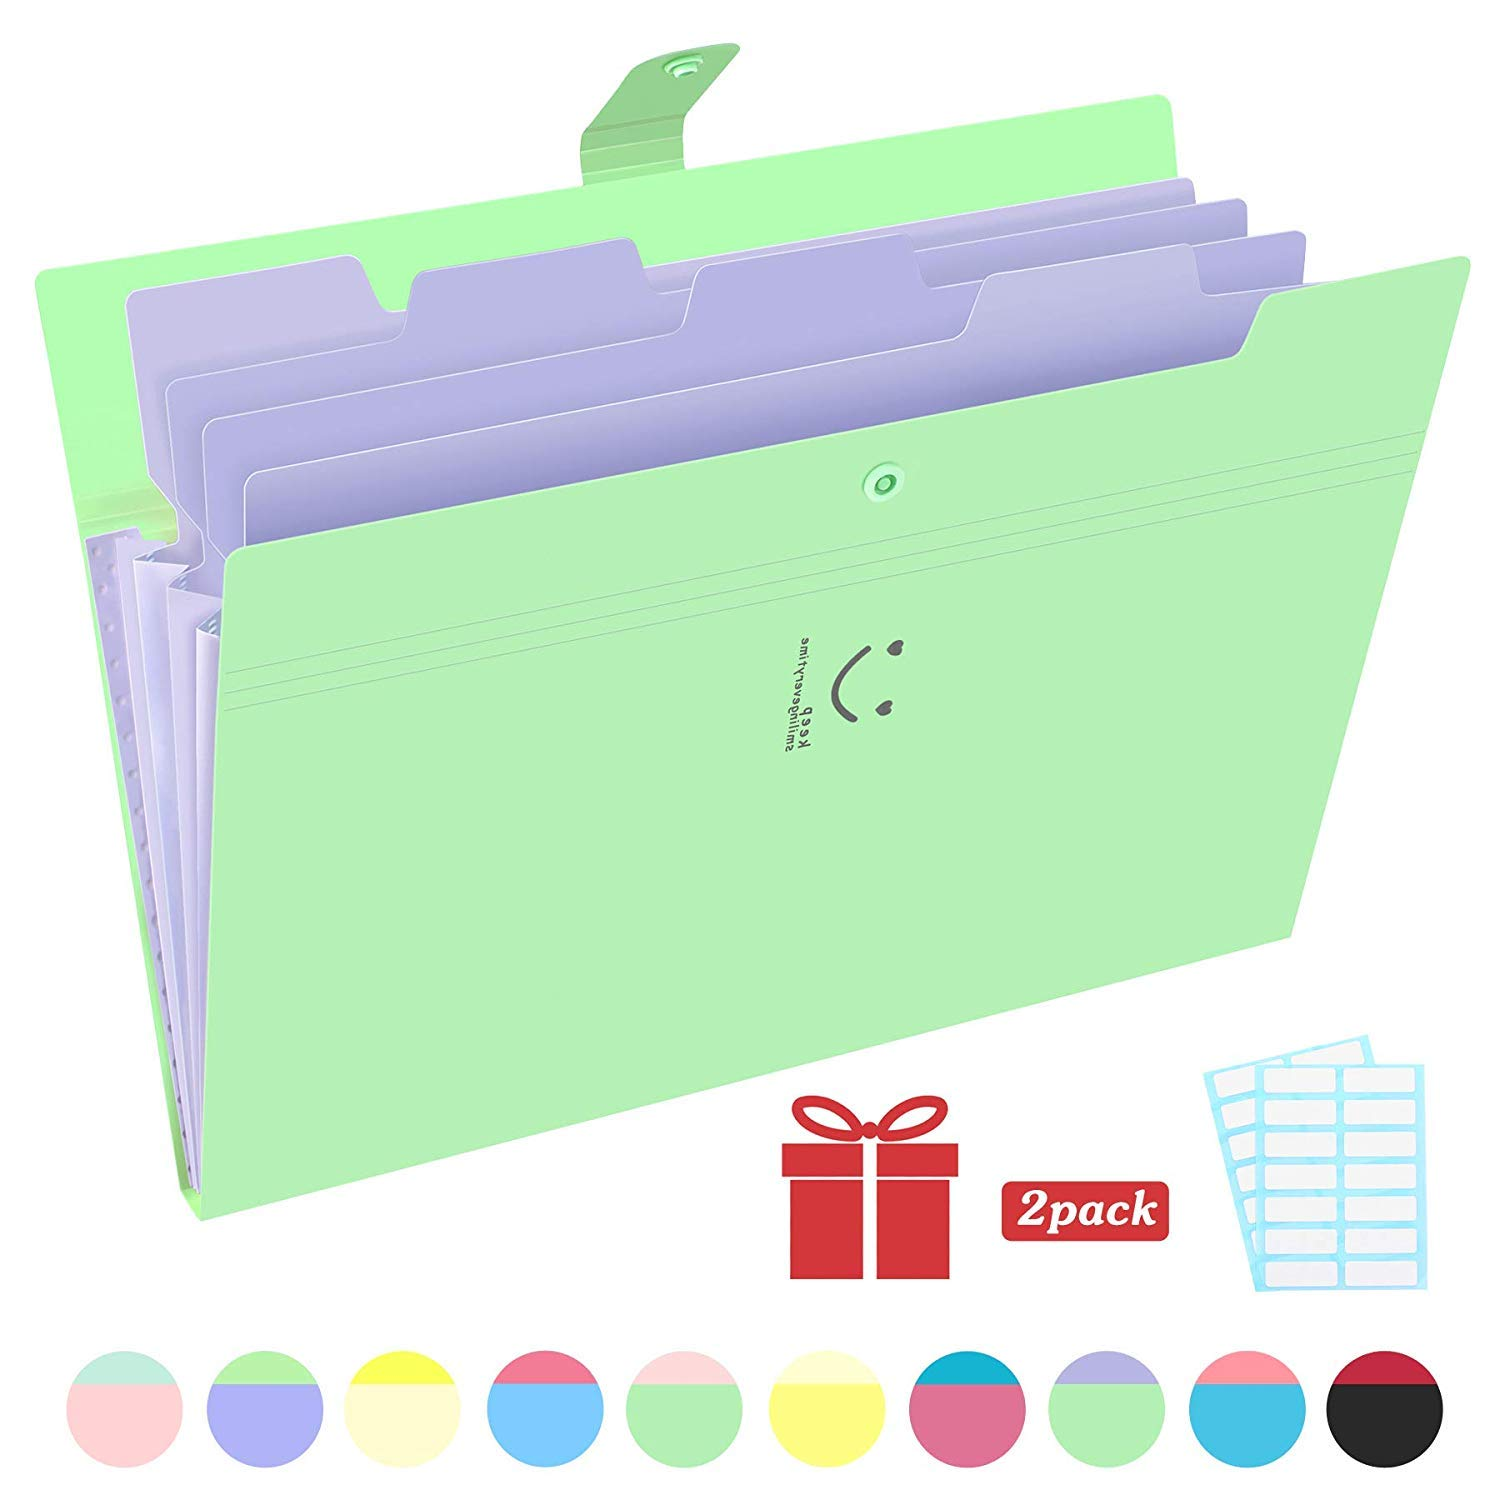 Phyxin Expanding File Folders 5 Pockets Document Organizer A4 Letter Size Plastic File Folder with Lables Document Holder for Business School Supplies Green